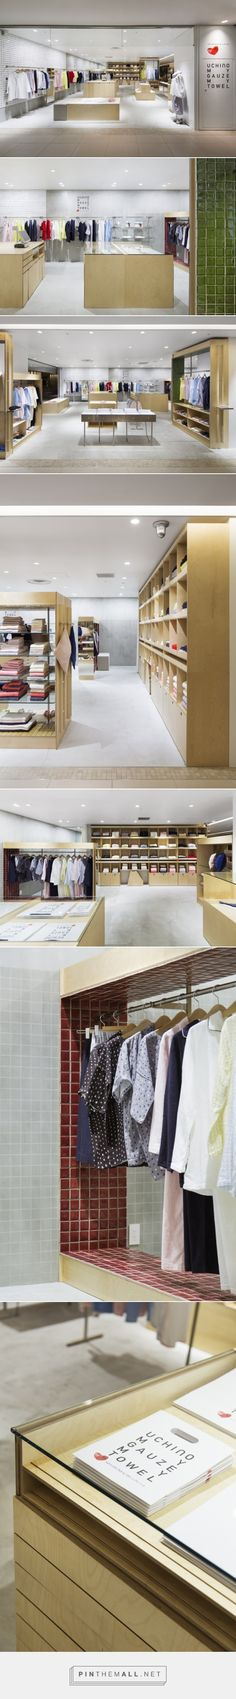 Uchino My GauzeMy Towel Store by Schemata Architects, Tokyo – Japan » Retail Design Blog... - a grouped images picture - Pin Them All